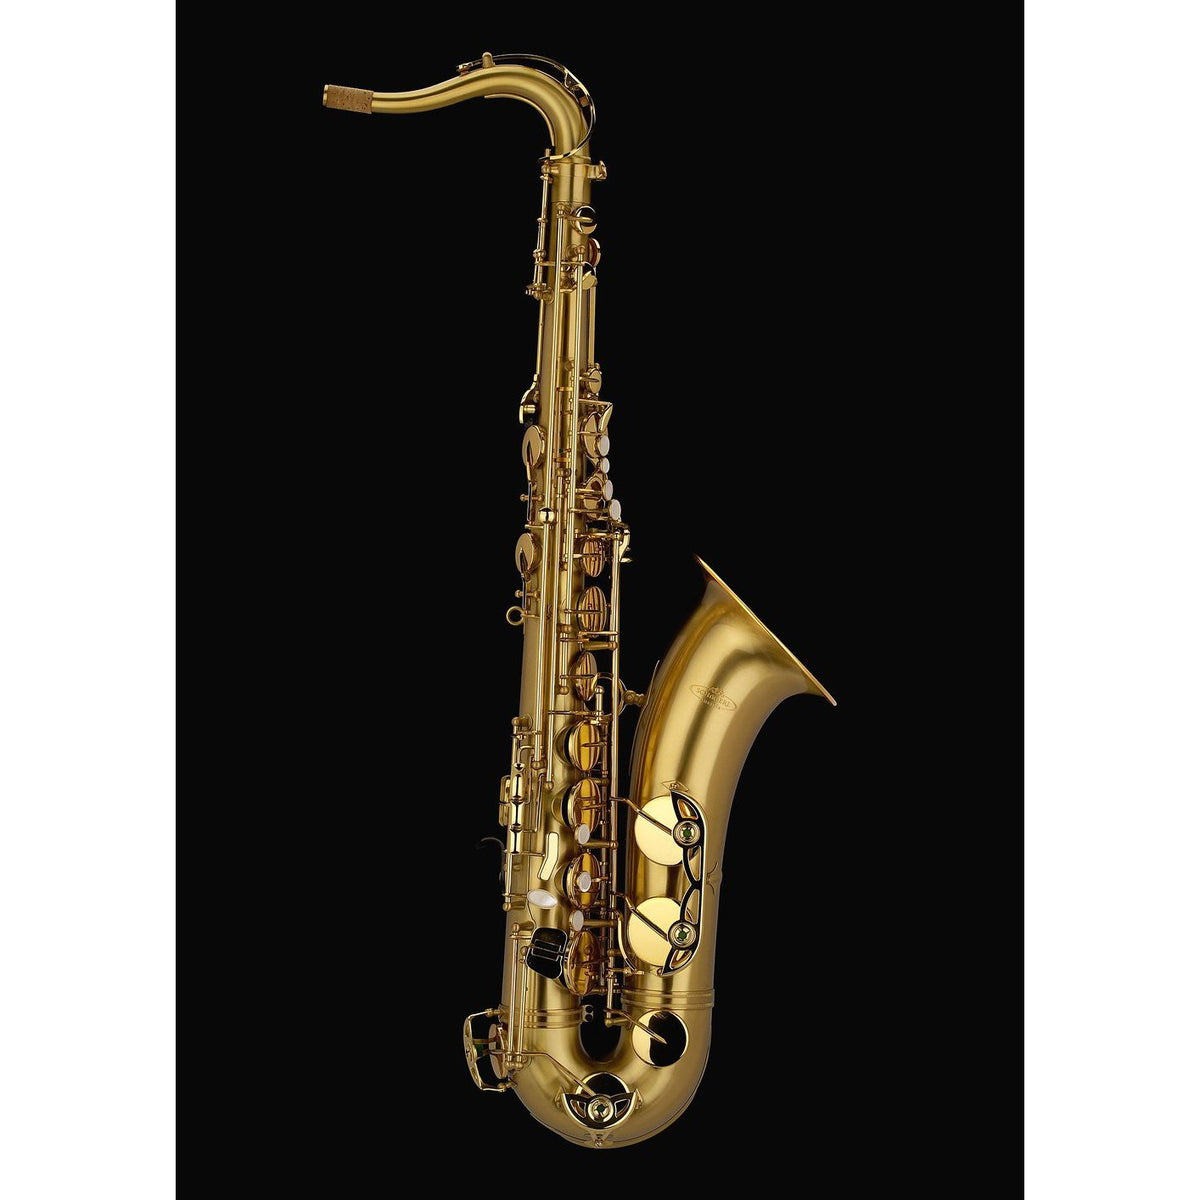 Schagerl - Academica Series - T-900 Tenor Saxophones-Saxophone-Schagerl-Brush Finish-Music Elements